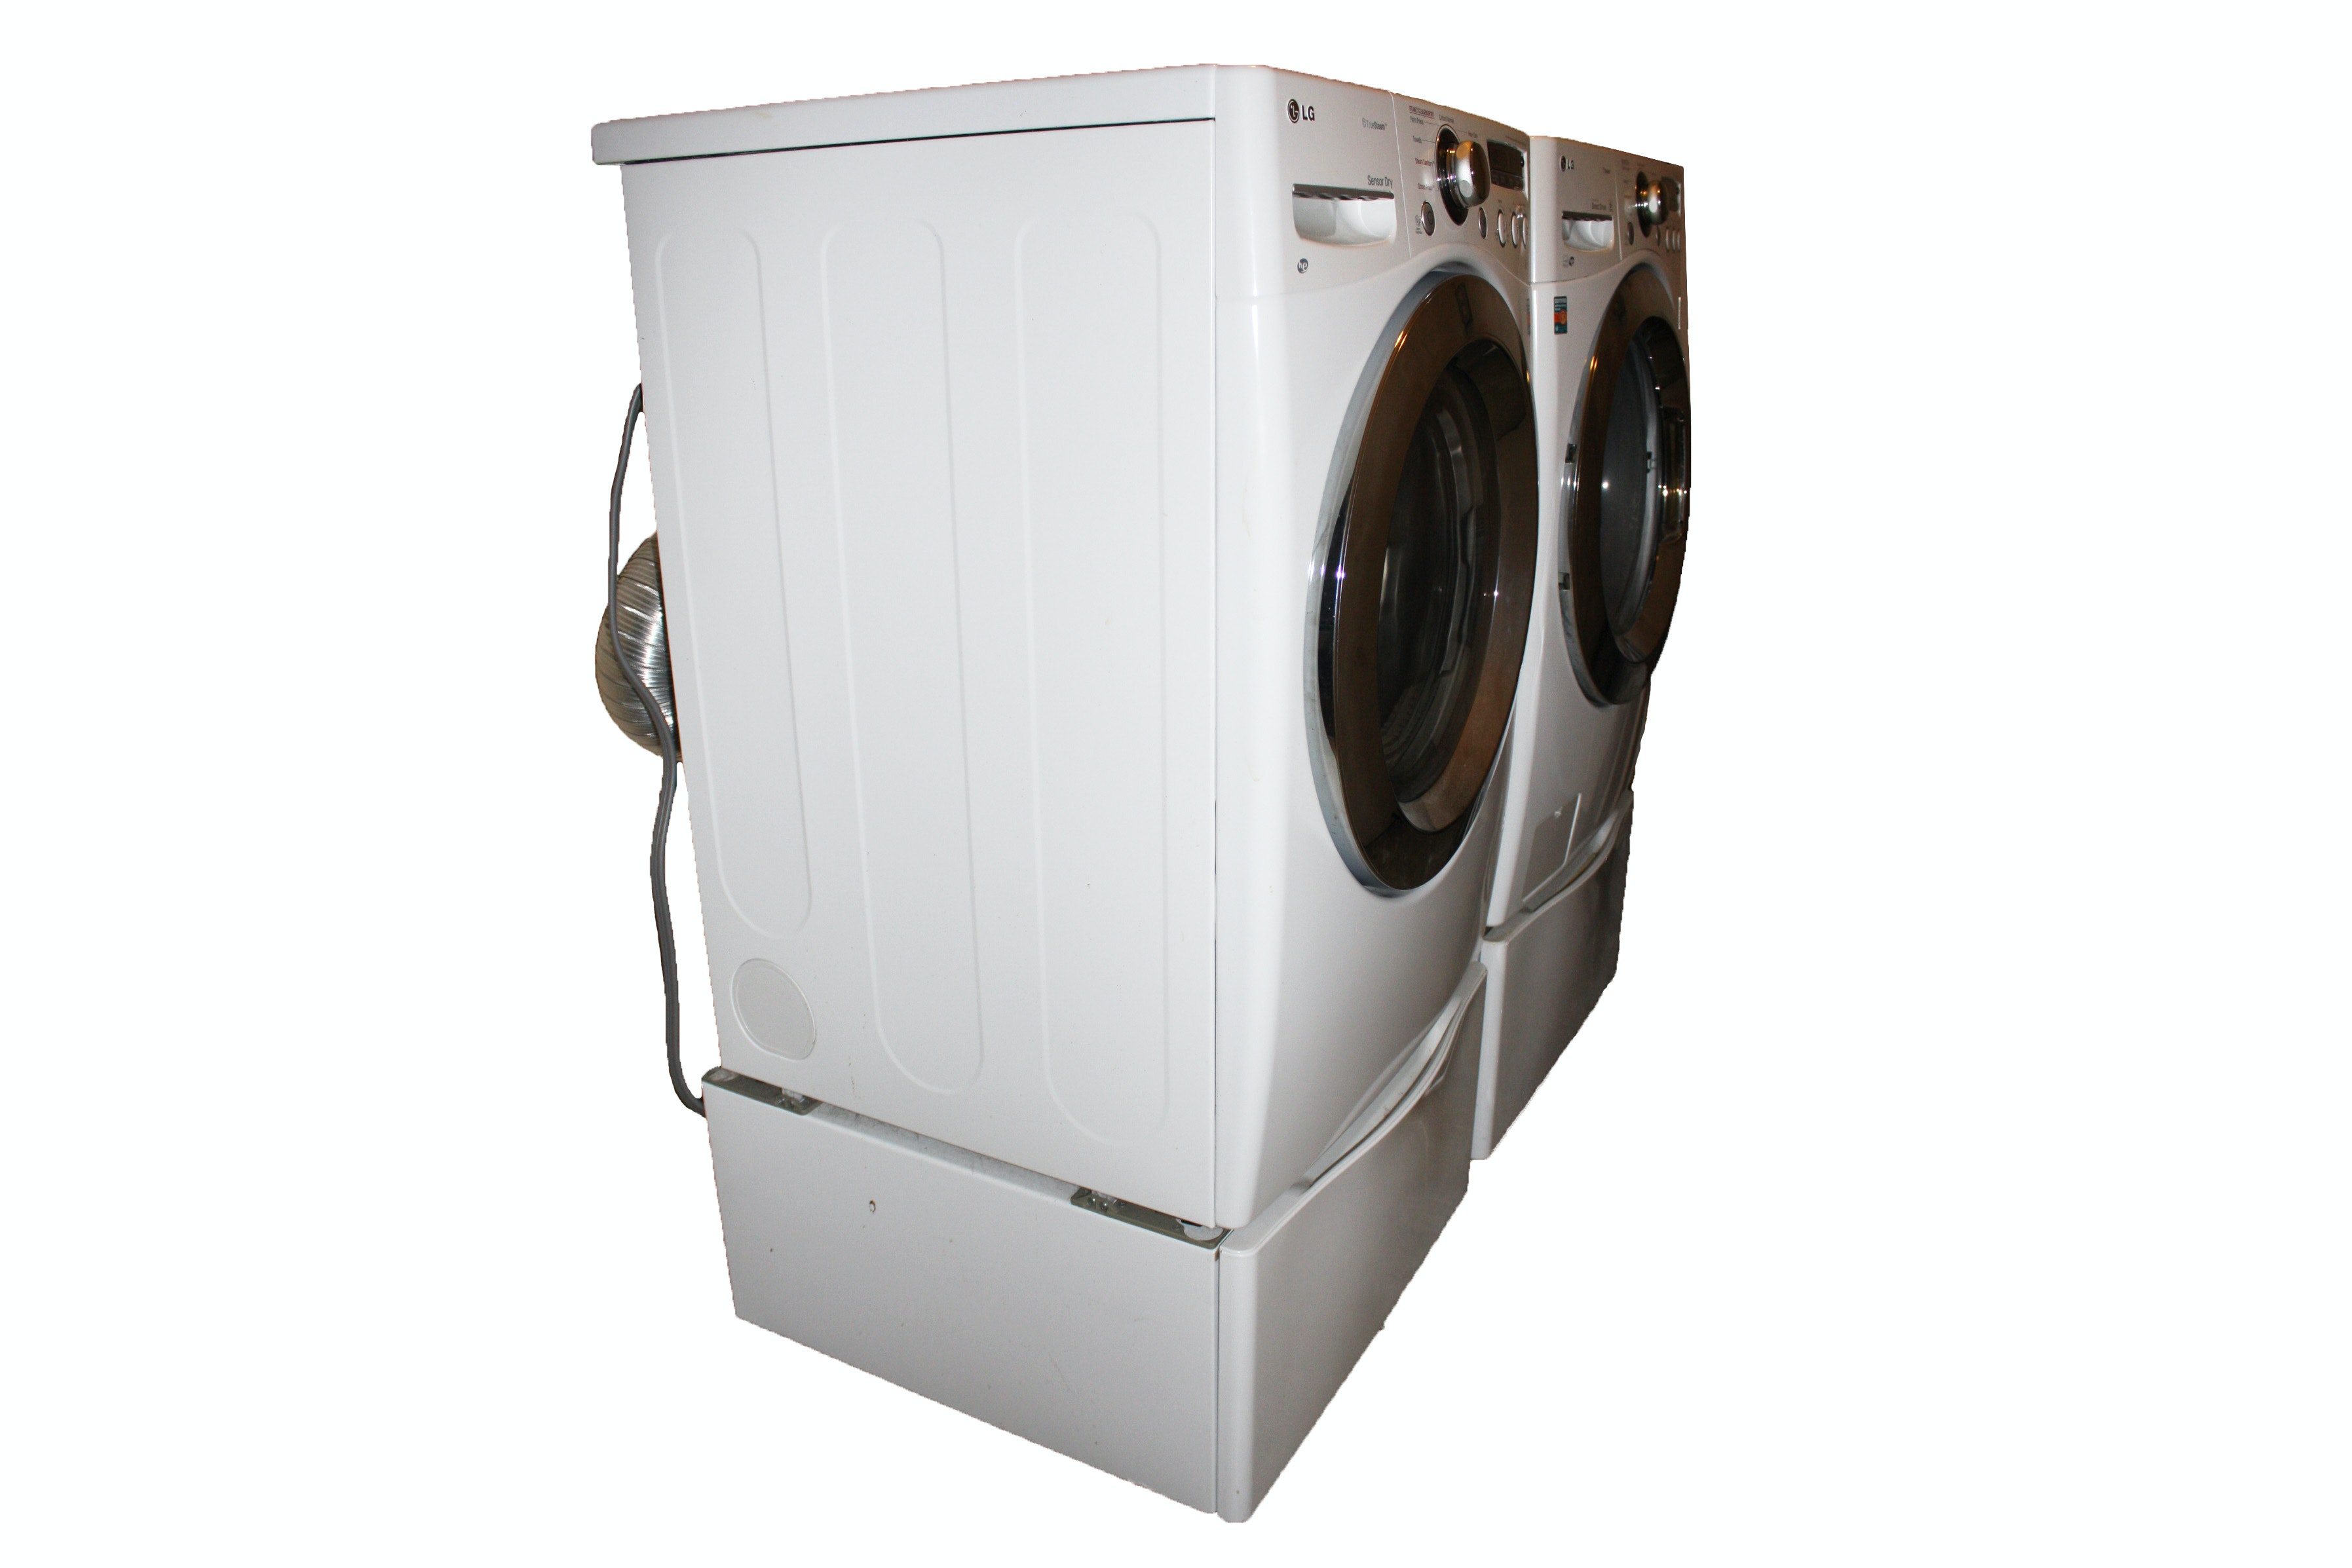 lg large capacity washer and dryer